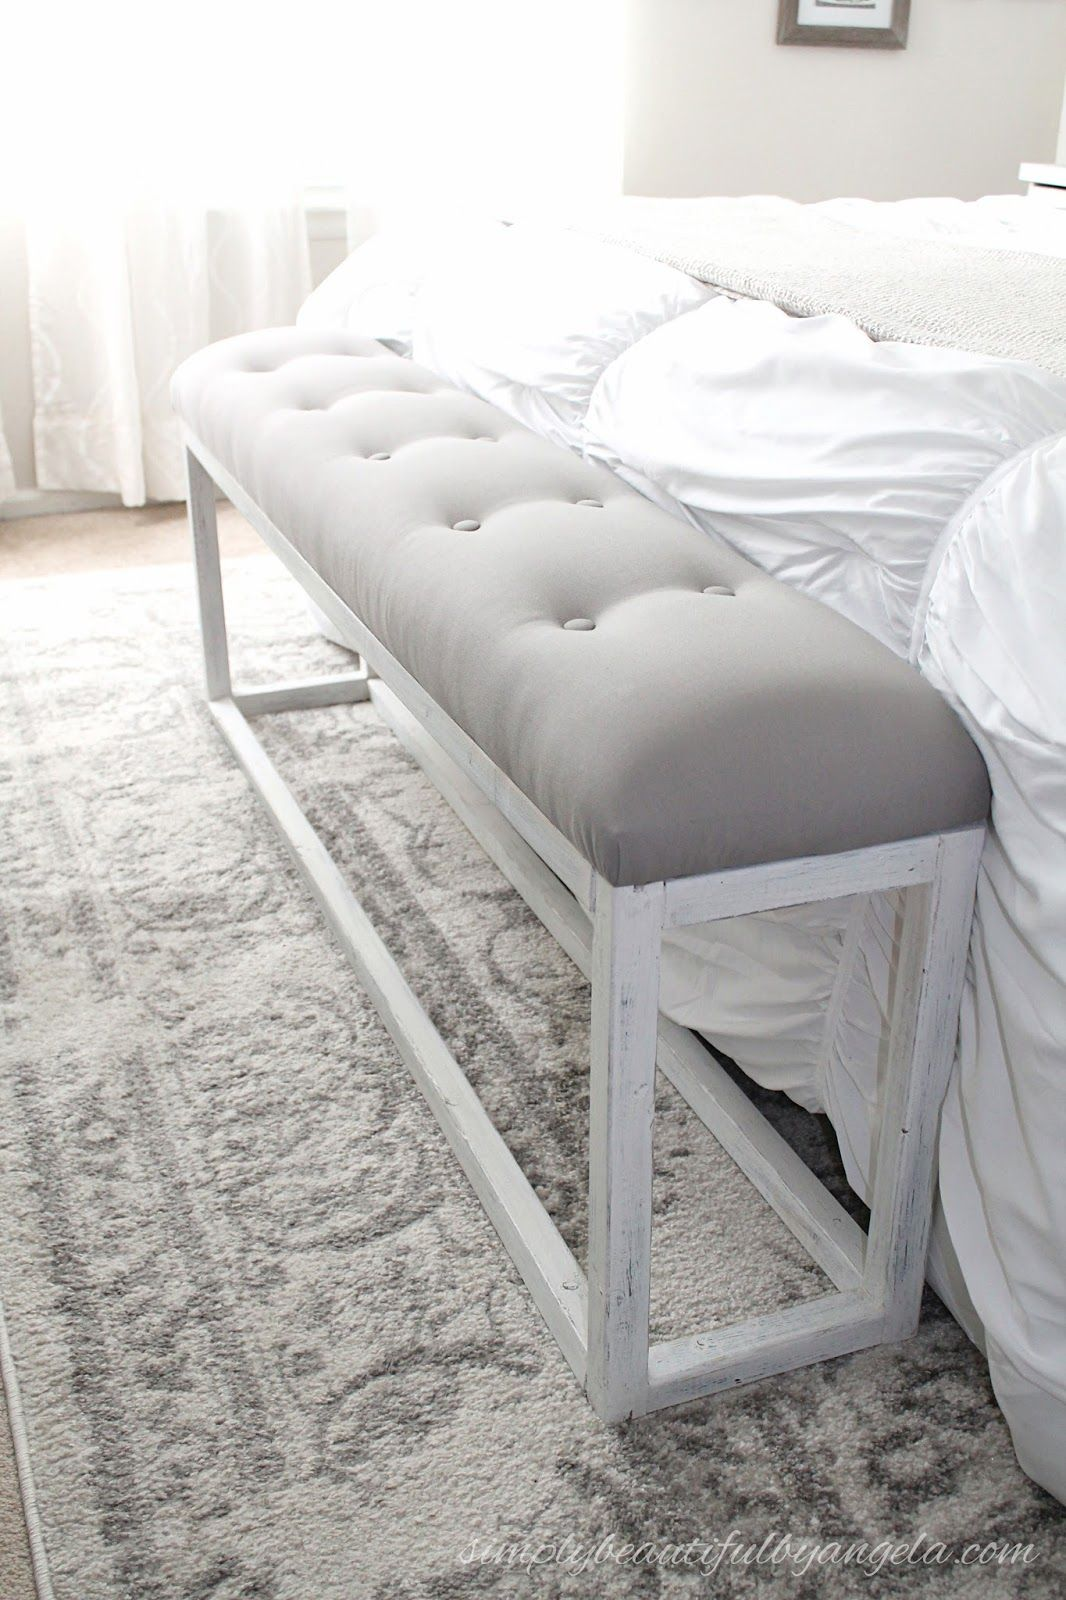 DIY Simple End of Bed Bench (With images) | End of bed ...